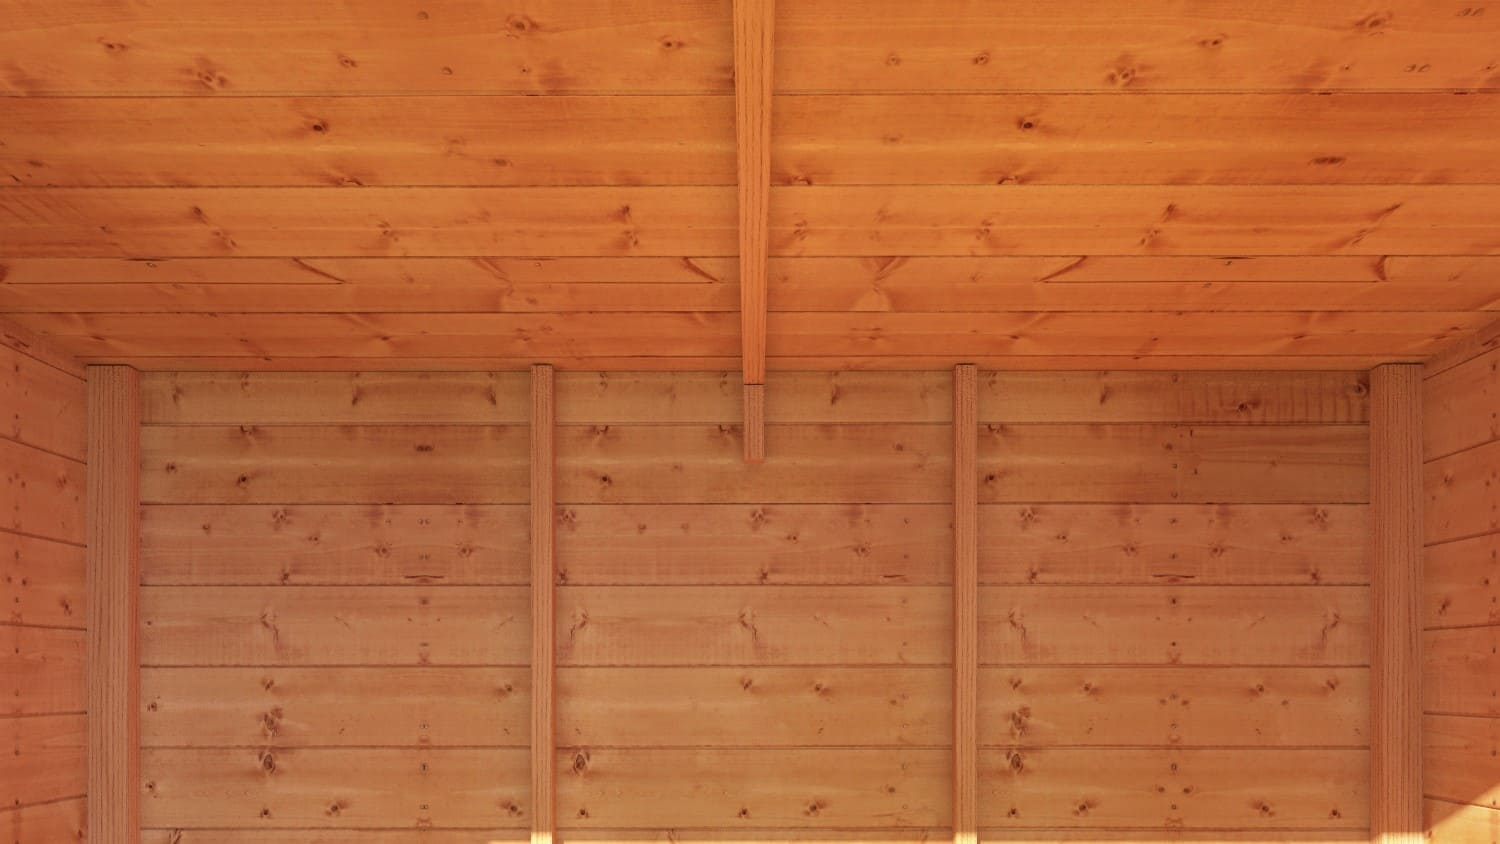 timber shed interior with walls and roof visible